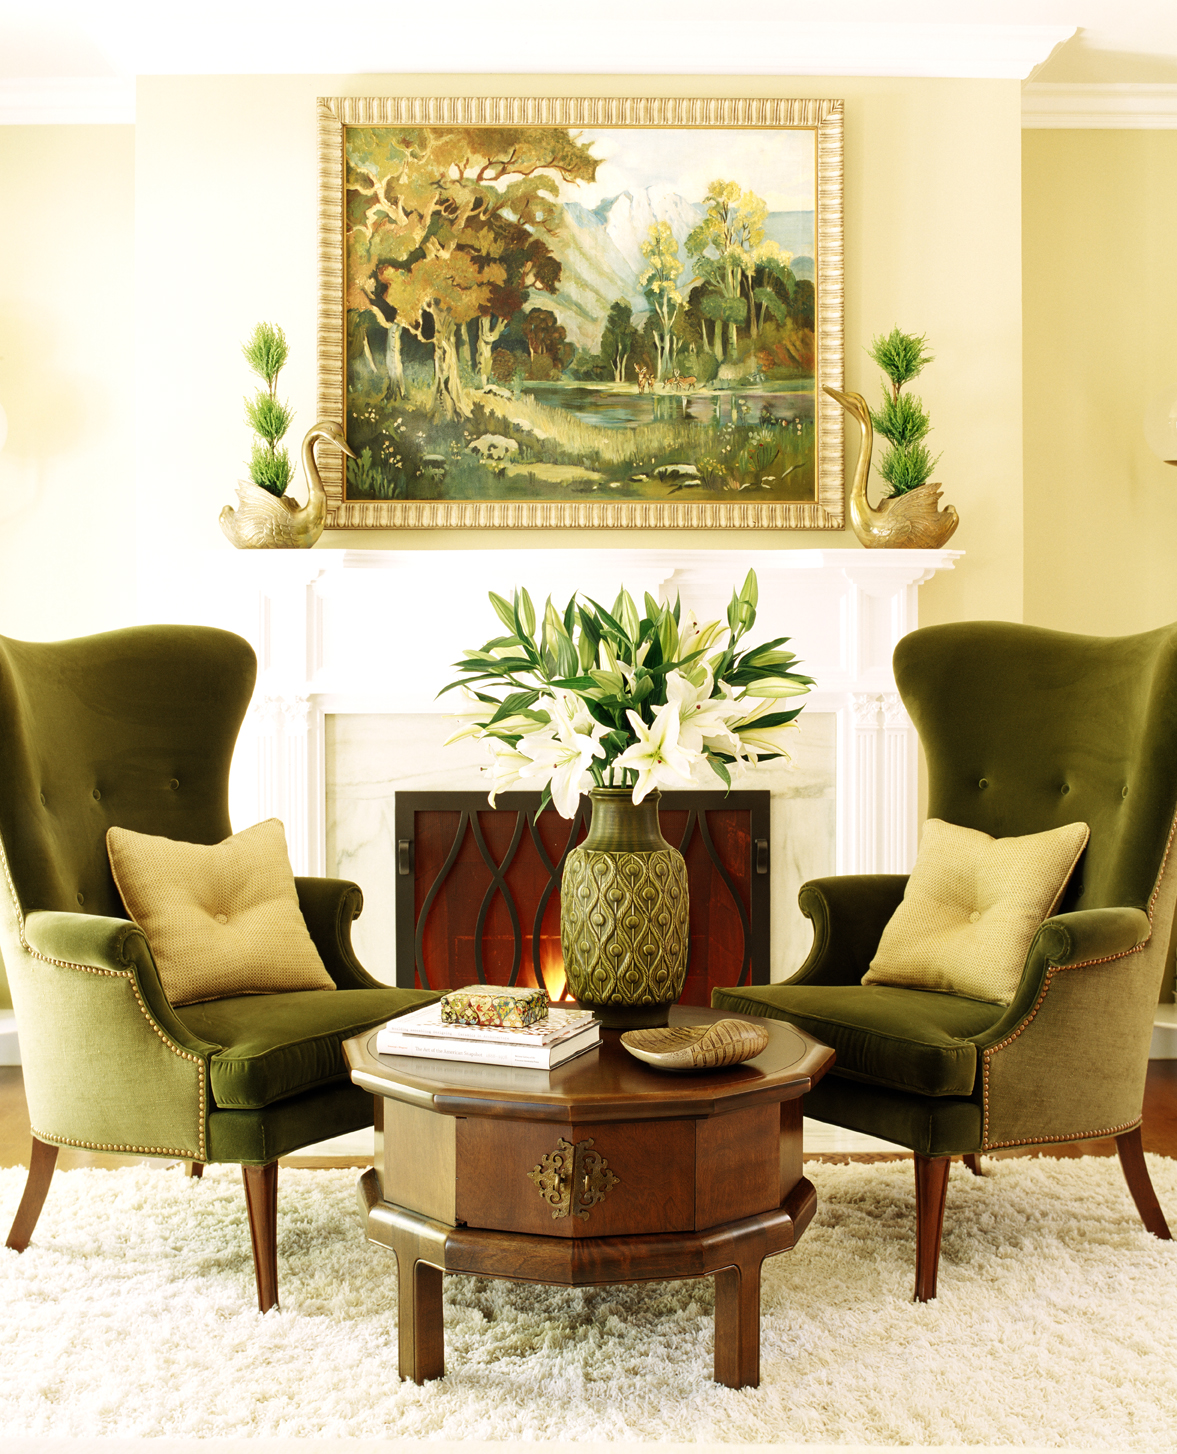 """""""If it doesn't feel like home, it's not complete."""" —Jeff Andrews Design, Los Angeles, California  Favorite Finishing Touches: """"It varies from project to project, but usually the final layer of a room includes accessories and the client's personal items and collections, as well as my own spin with new (or old) things, flowers, and maybe even an artwork shuffle.""""  Design Advice: """"All things in a room make up the whole of the design and add strength to the overall feeling. To me, finishing touches are the small things that can change for any occasion — scented candles, seasonal flowers, and people enjoying a room are the best additions. Every room needs to be pulled together with objects of meaning as well as pieces that bring the color story to life like pillows, framed photos, pottery, and books. If it doesn't feel like home, it's not complete. Fill each room with things you love, things that bring you enjoyment every time you enter the room."""""""